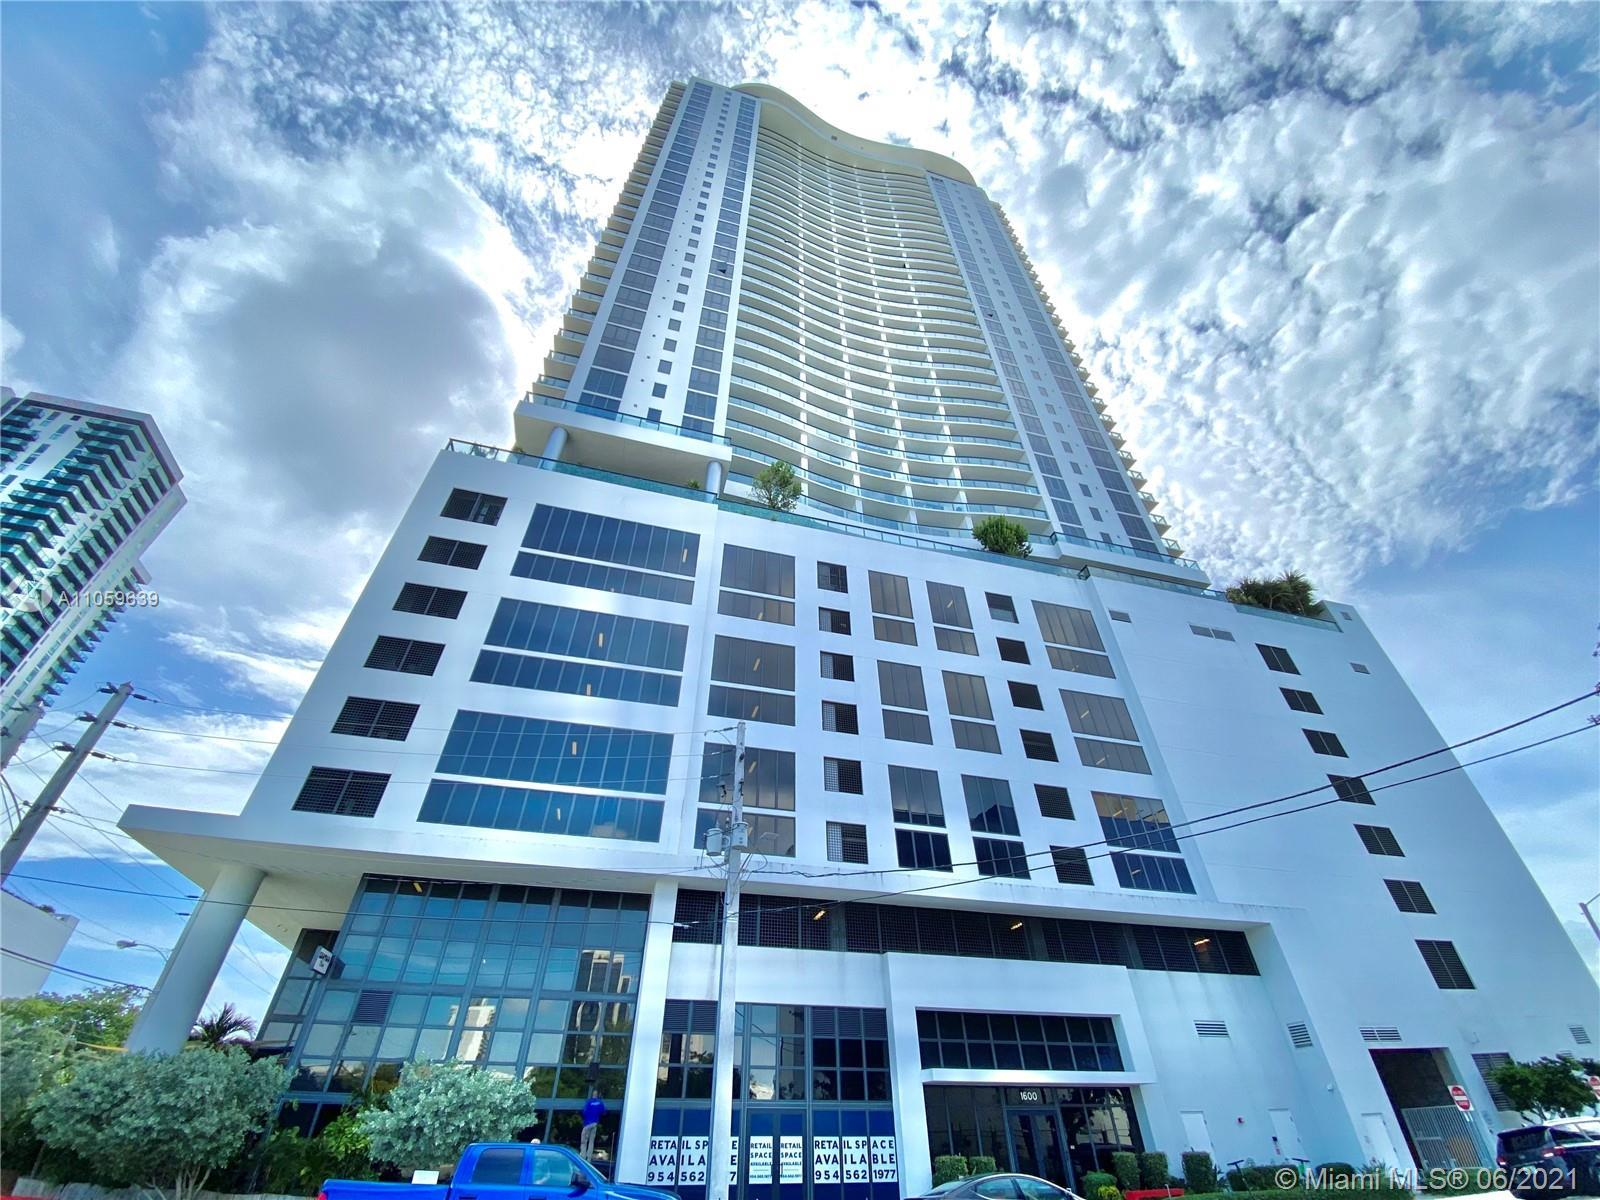 For sale 1 bedroom, 1 dent, 1.5 bath, luxury Residence located in Canvas Condo. Strategically locat